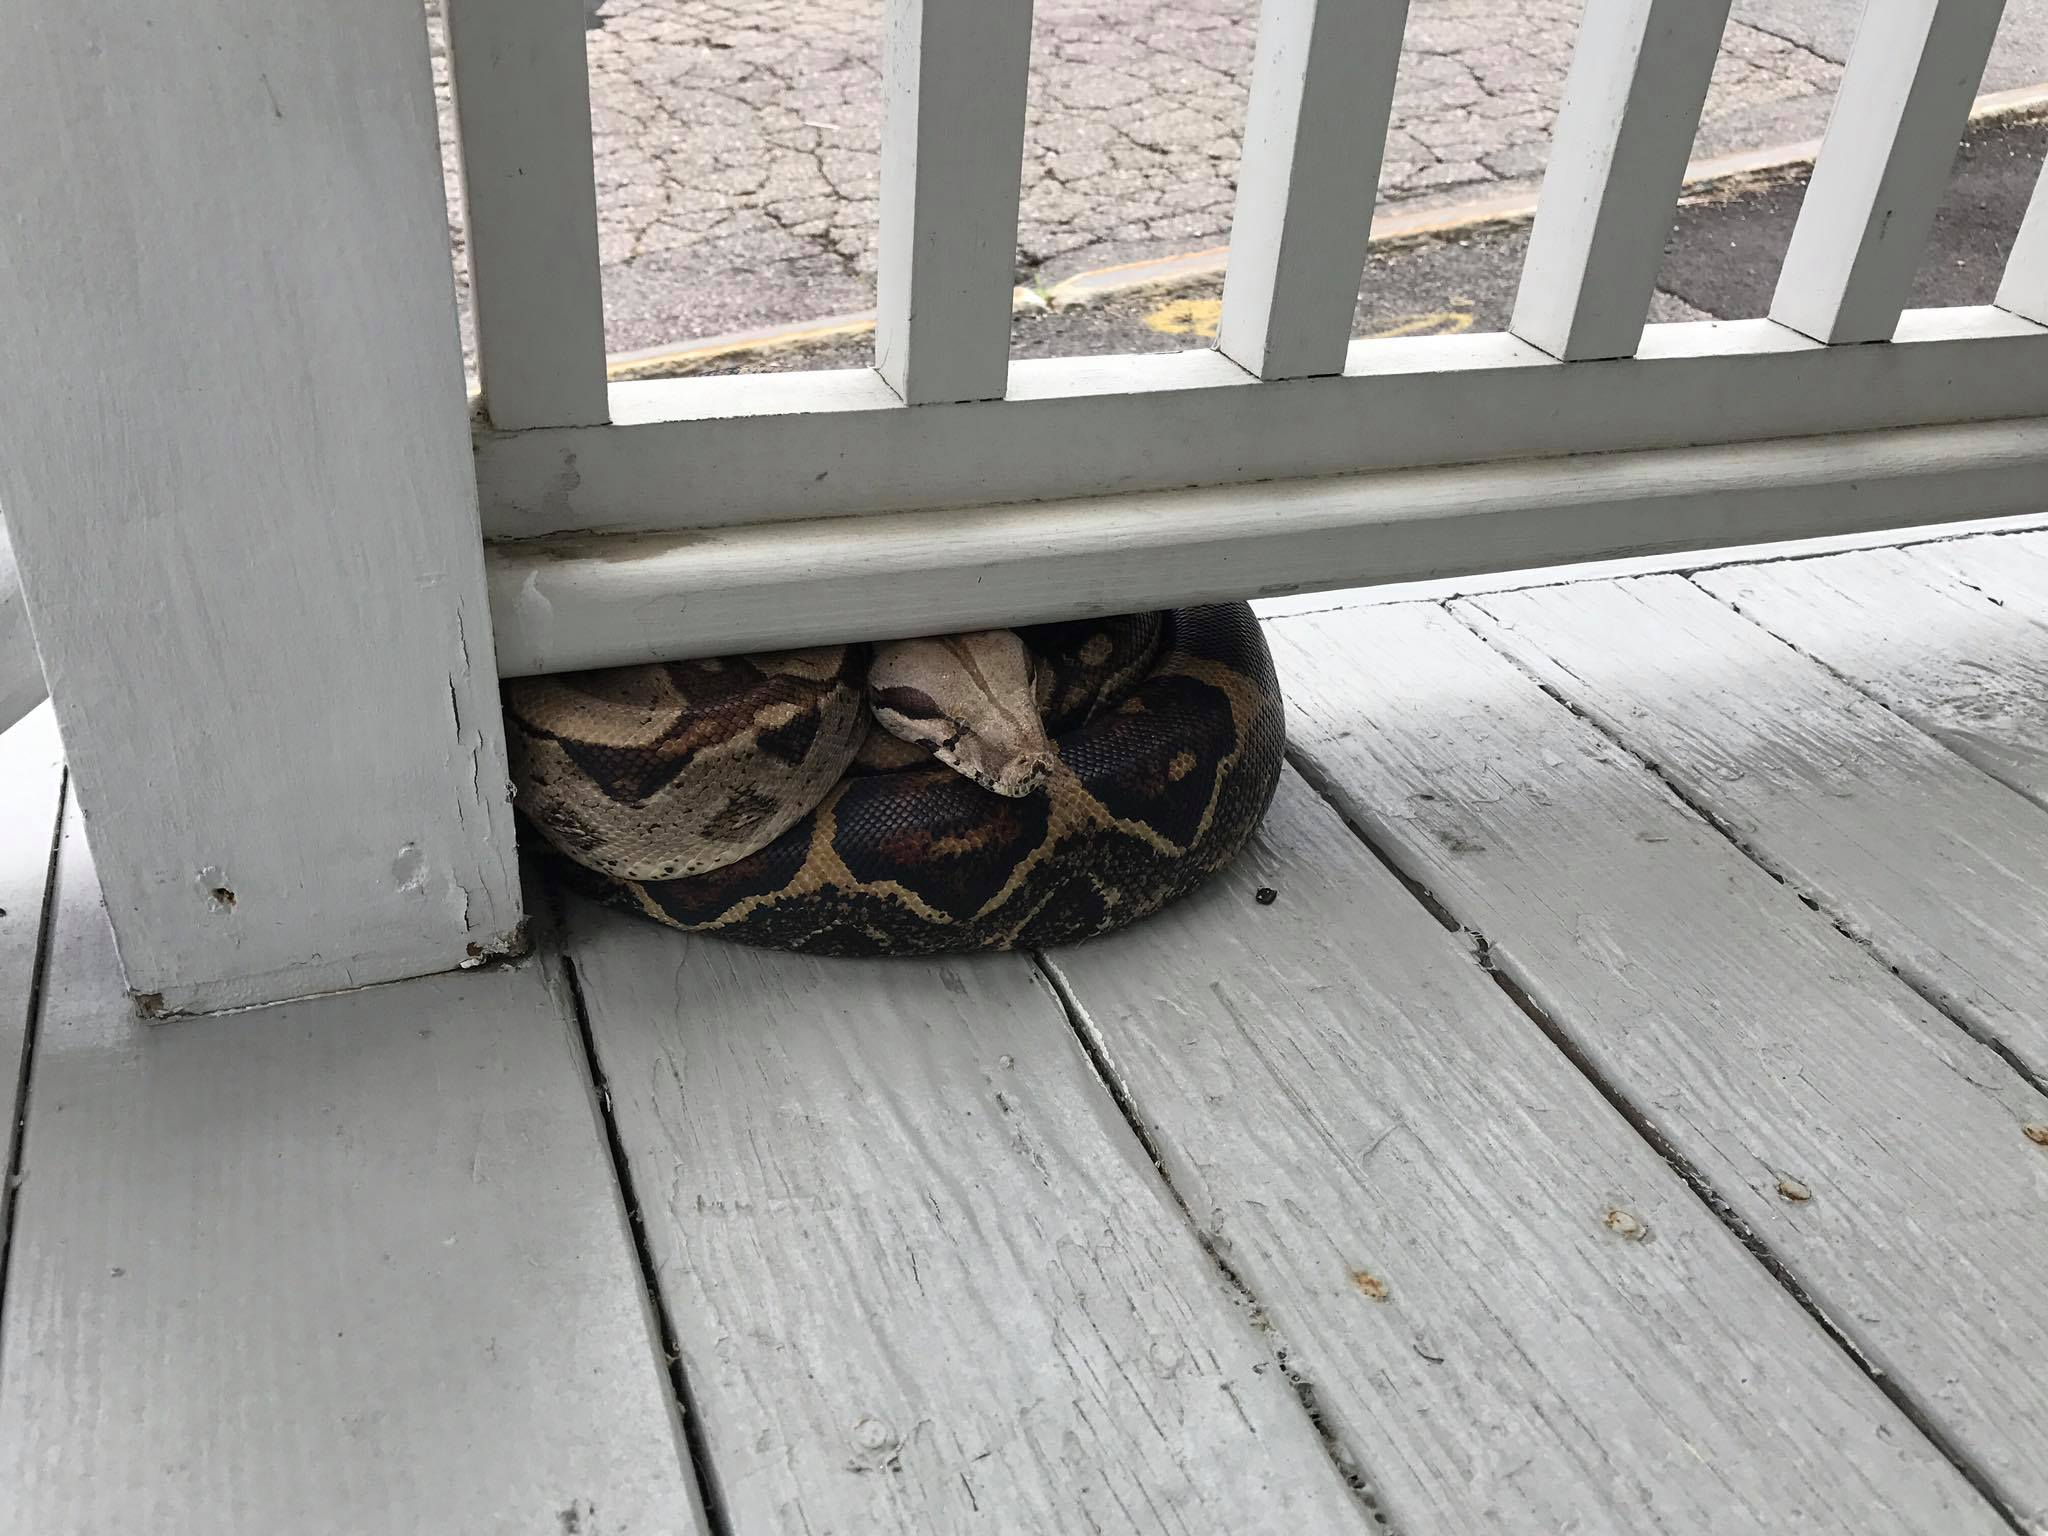 A five-foot red-tailed boa constrictor is pictured on the porch of 68 High St. in Biddeford on Tuesday. SUBMITTED PHOTO/Courtesy of Southern Maine Animal Welfare Group